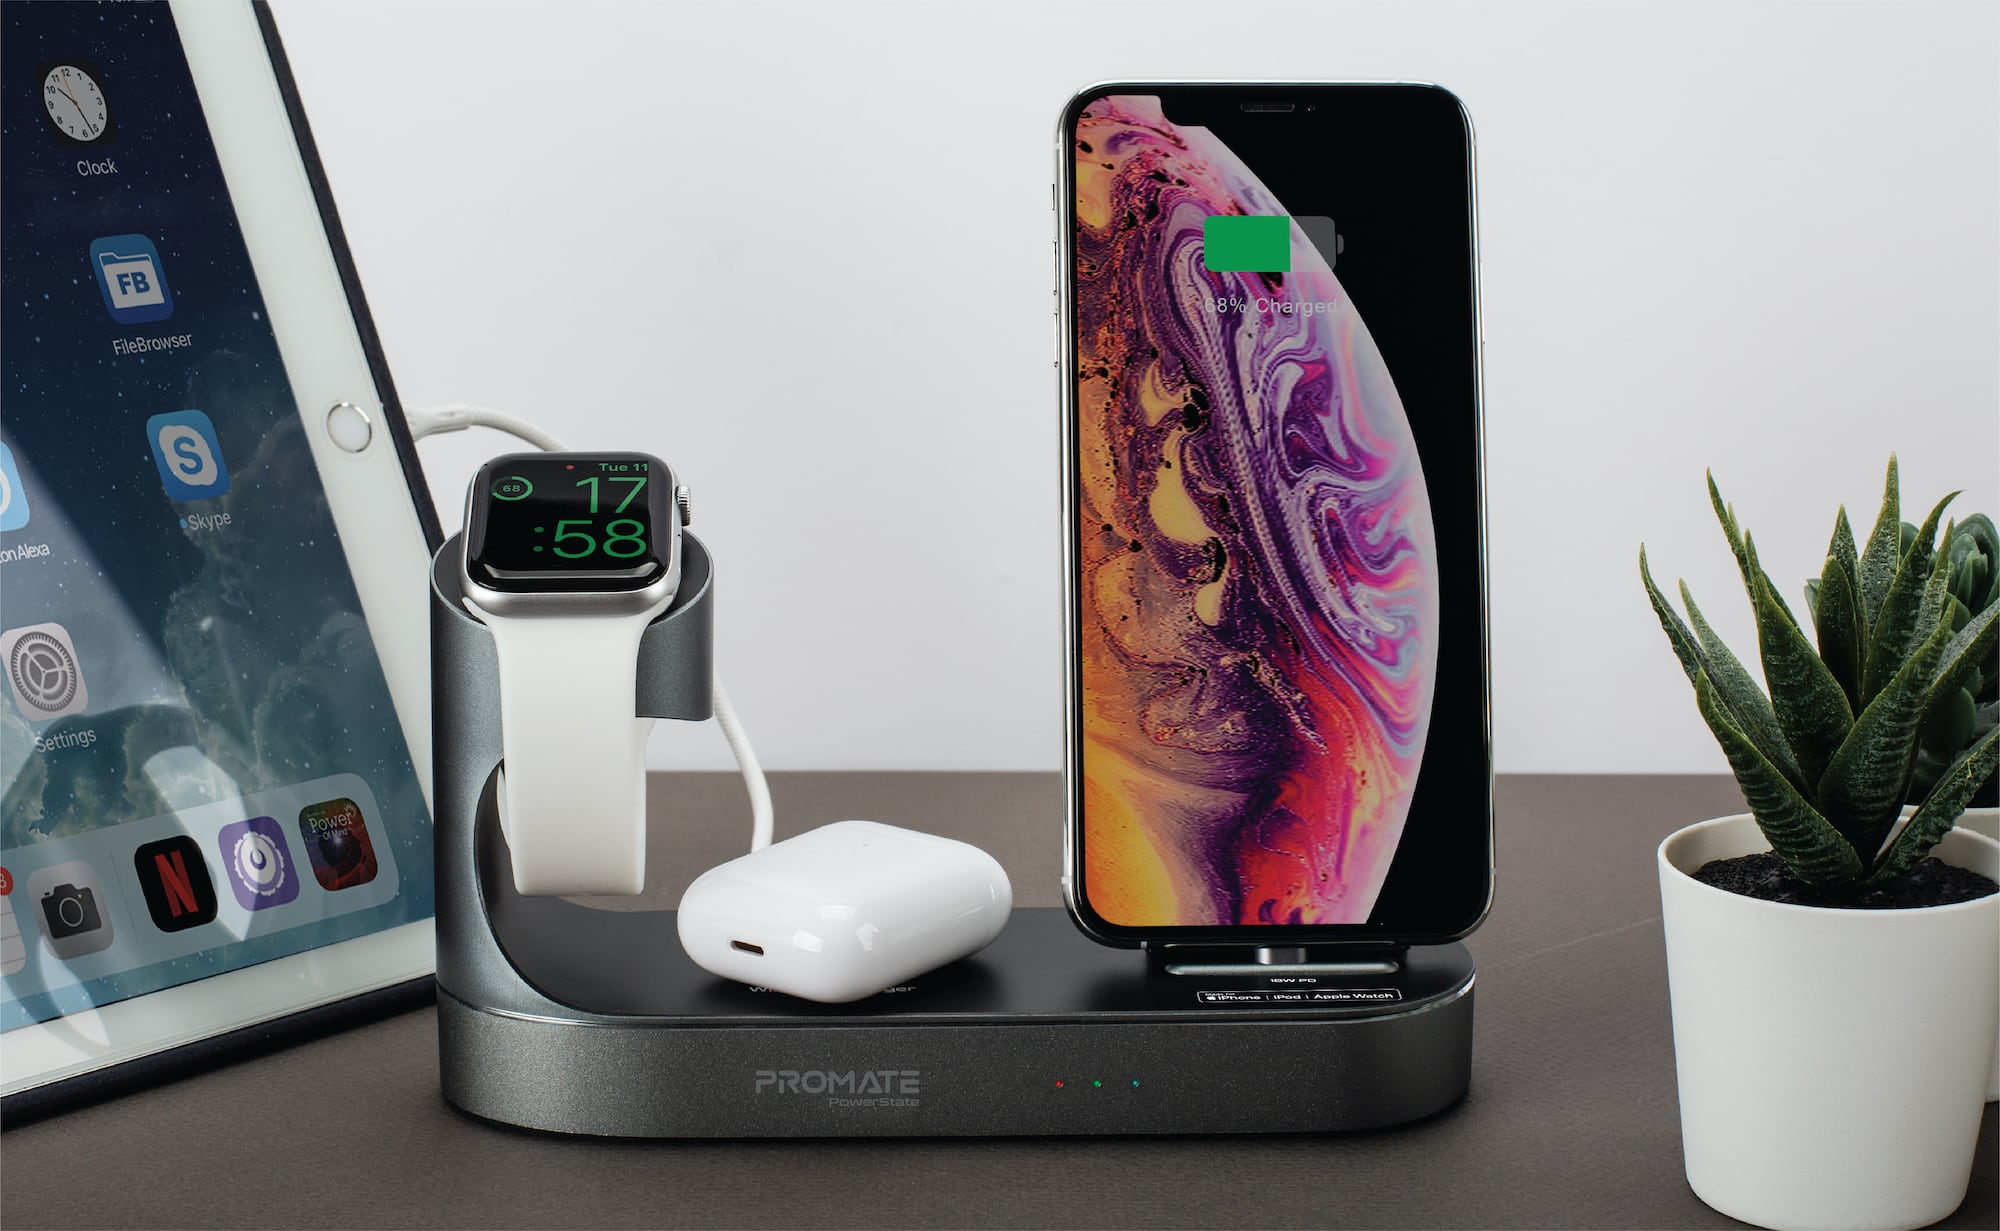 Promate PowerState All-in-One Dock charges and displays all your Apple devices